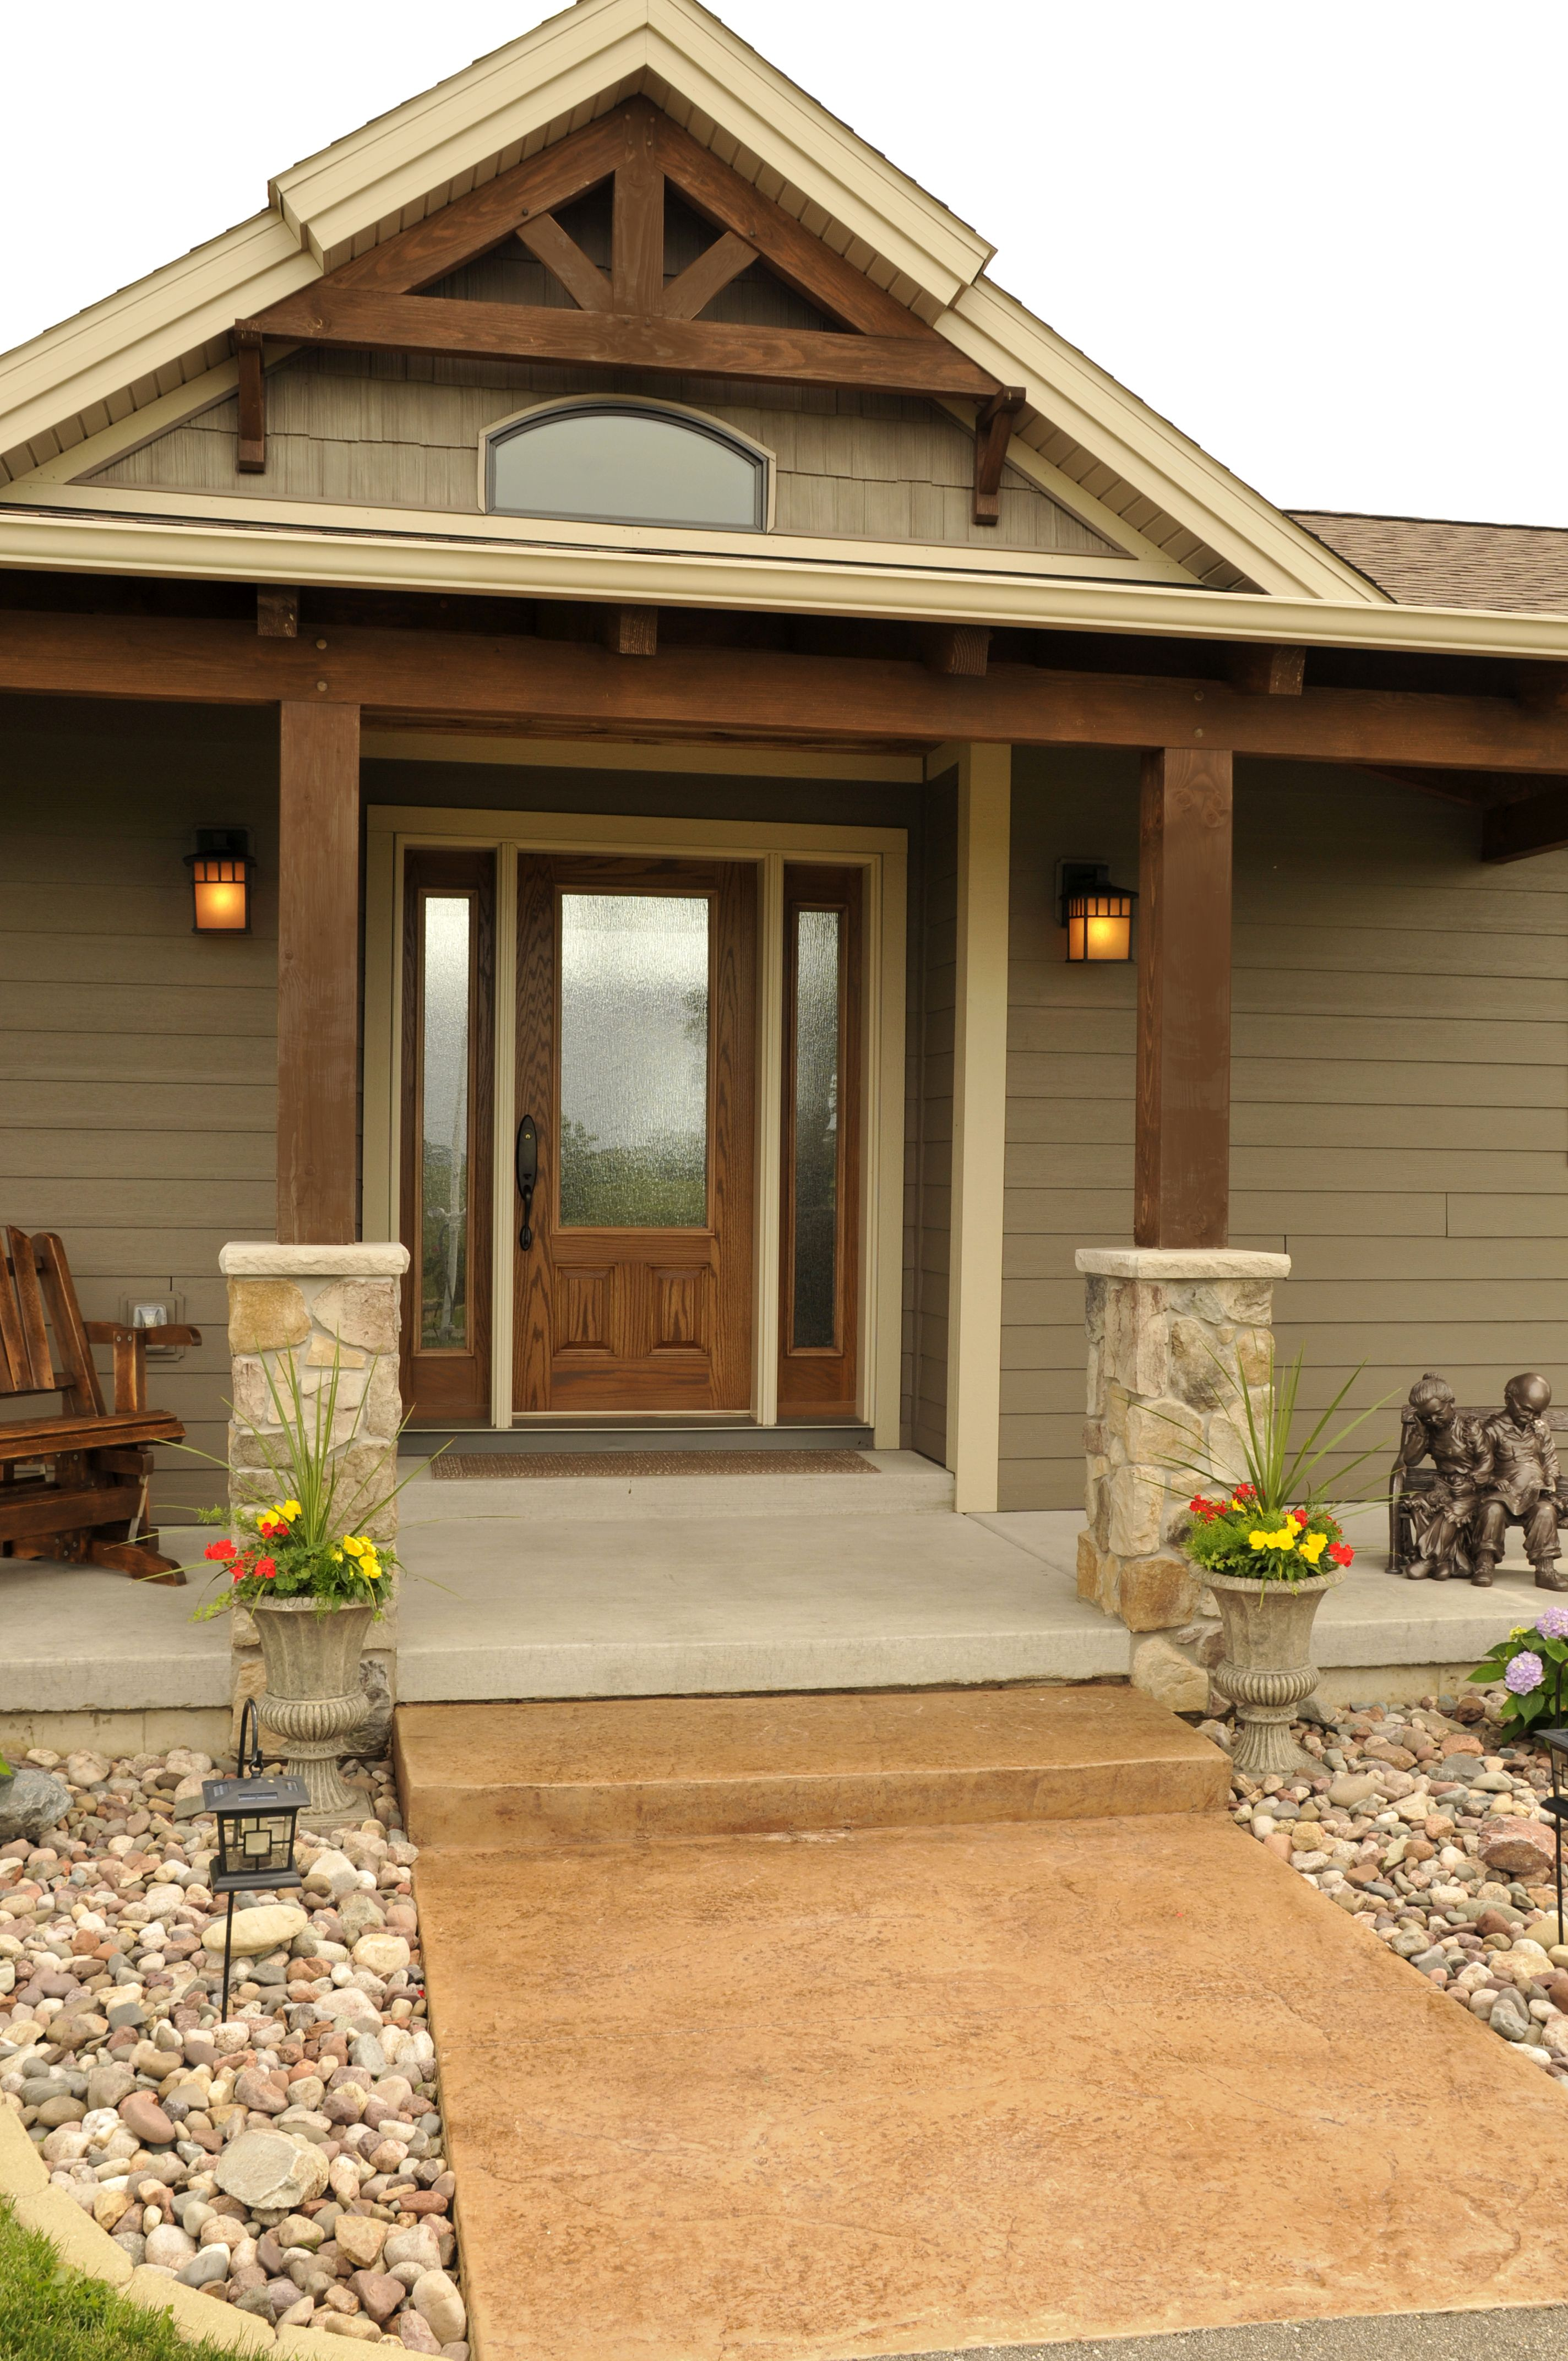 Landscaping in front of house for Exterior house accents